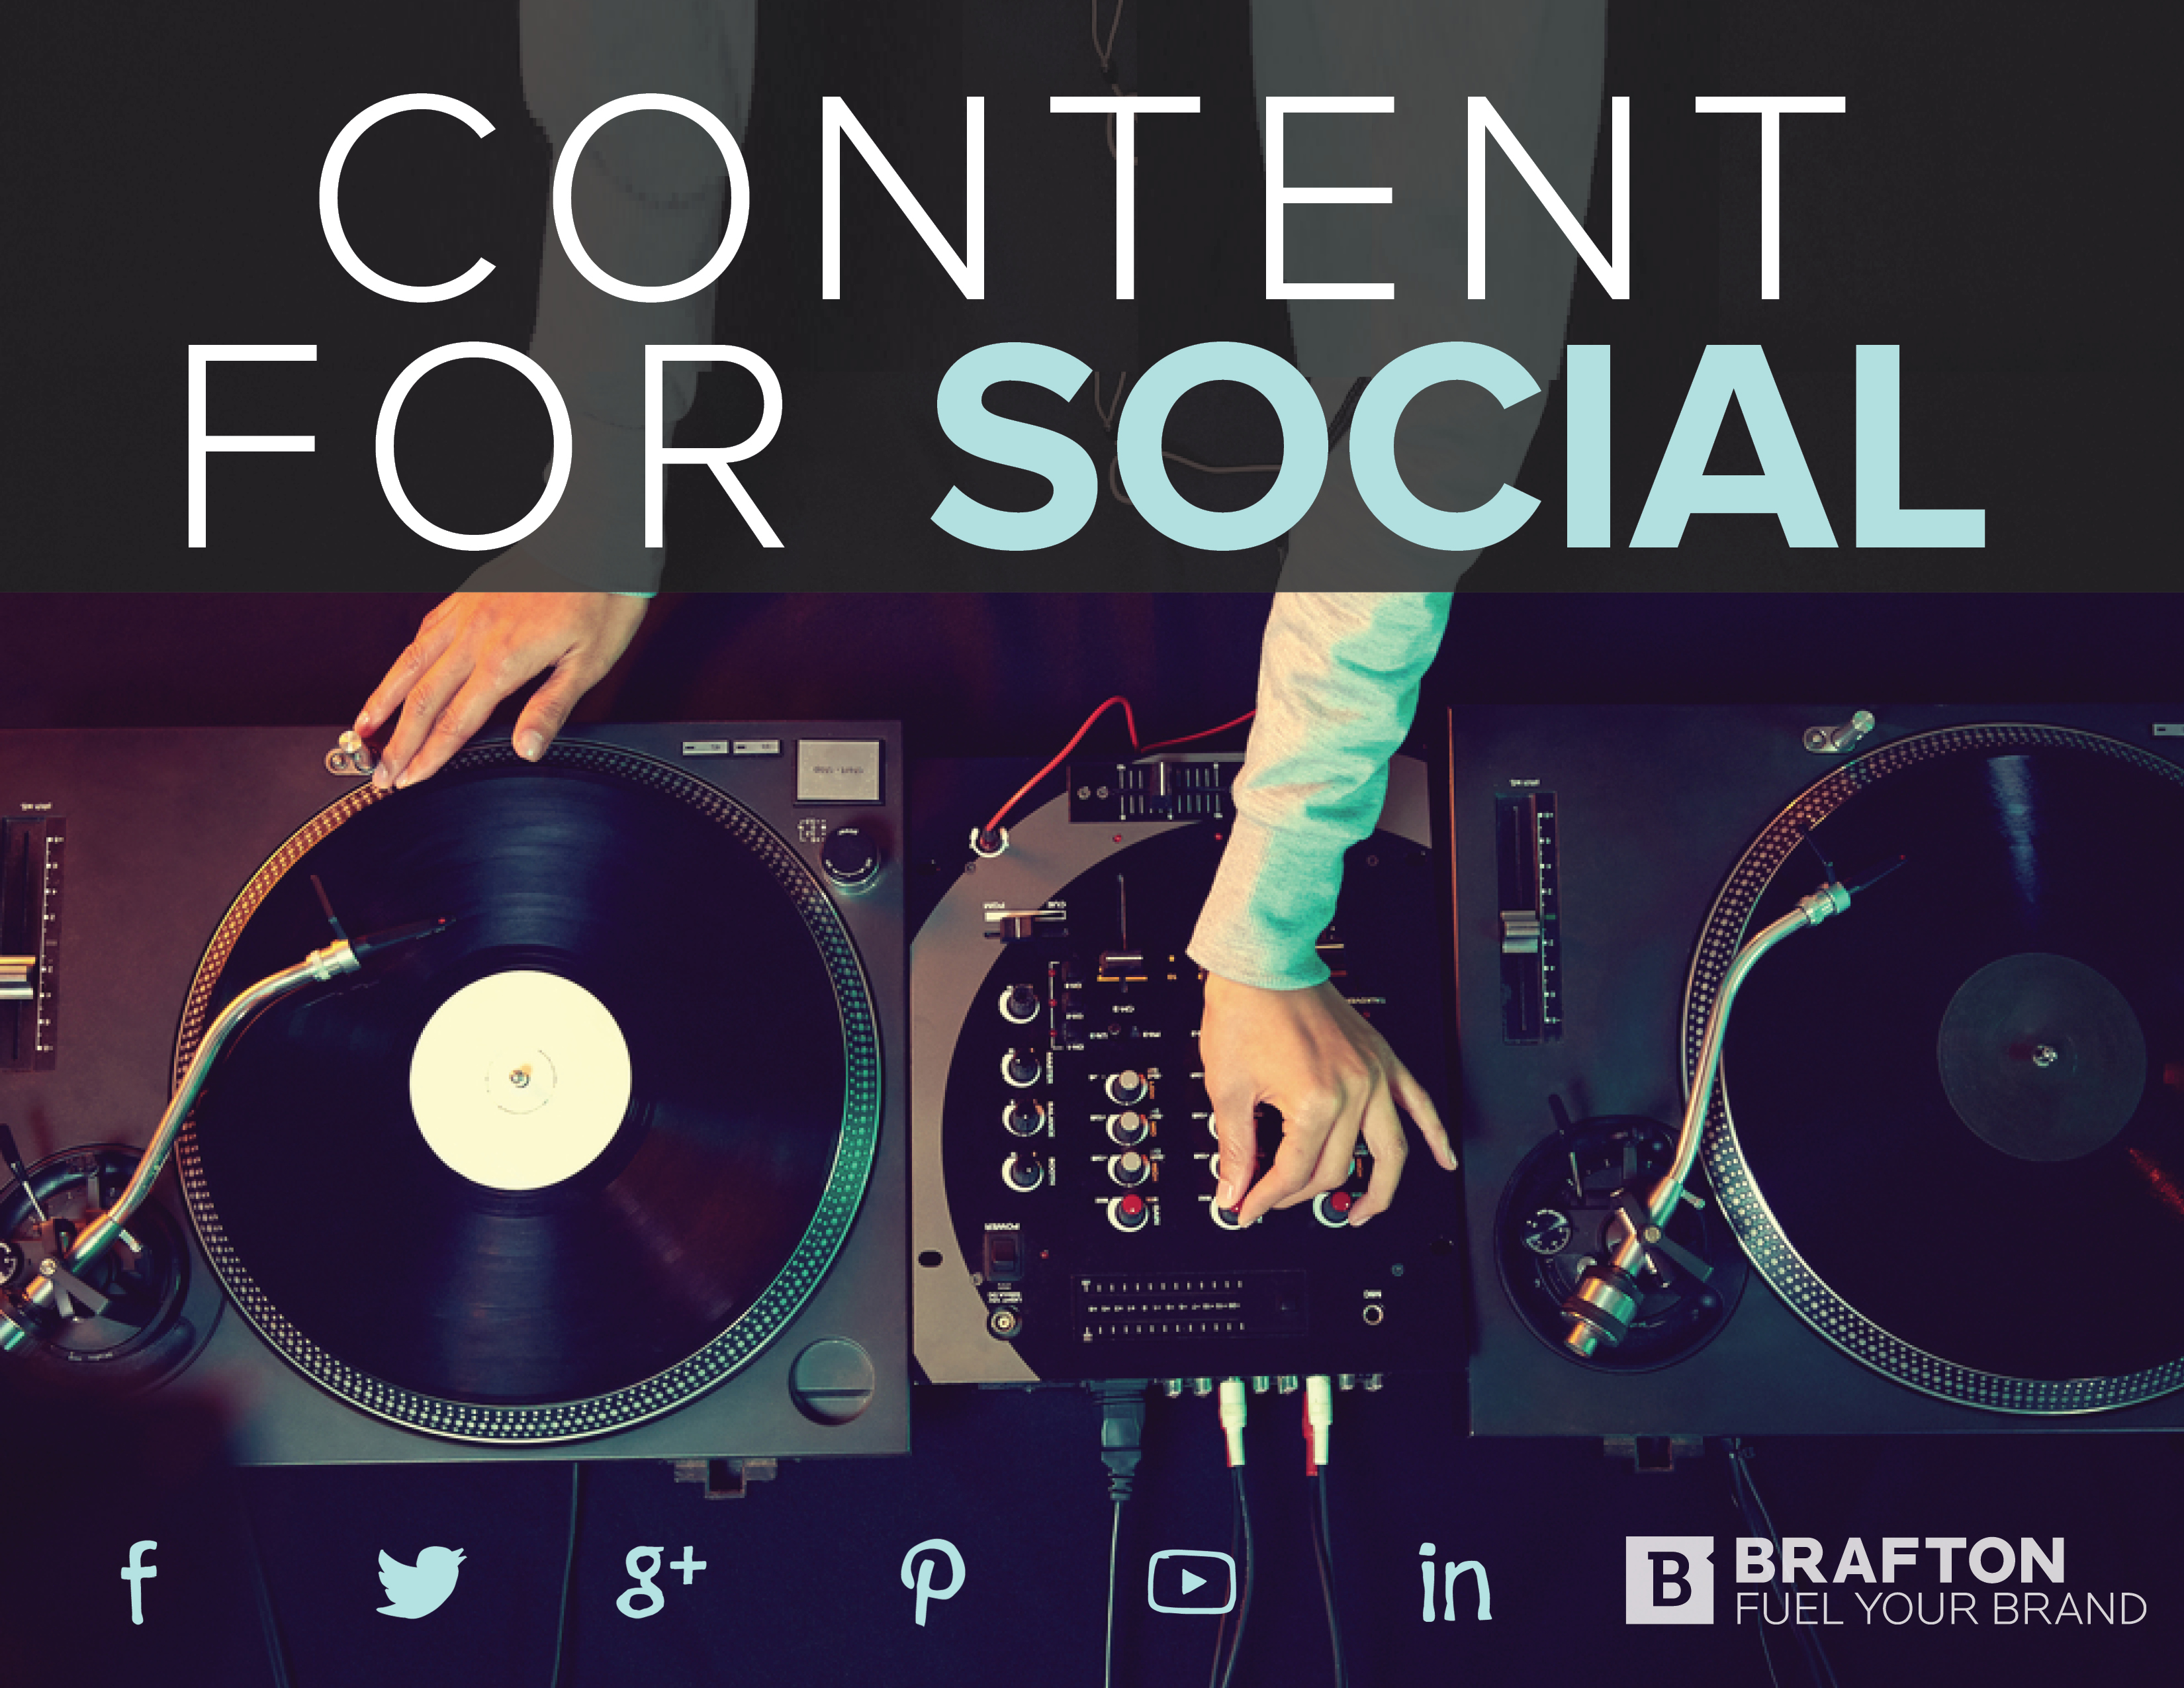 This eBook shows marketers how to create content for social media campaigns.